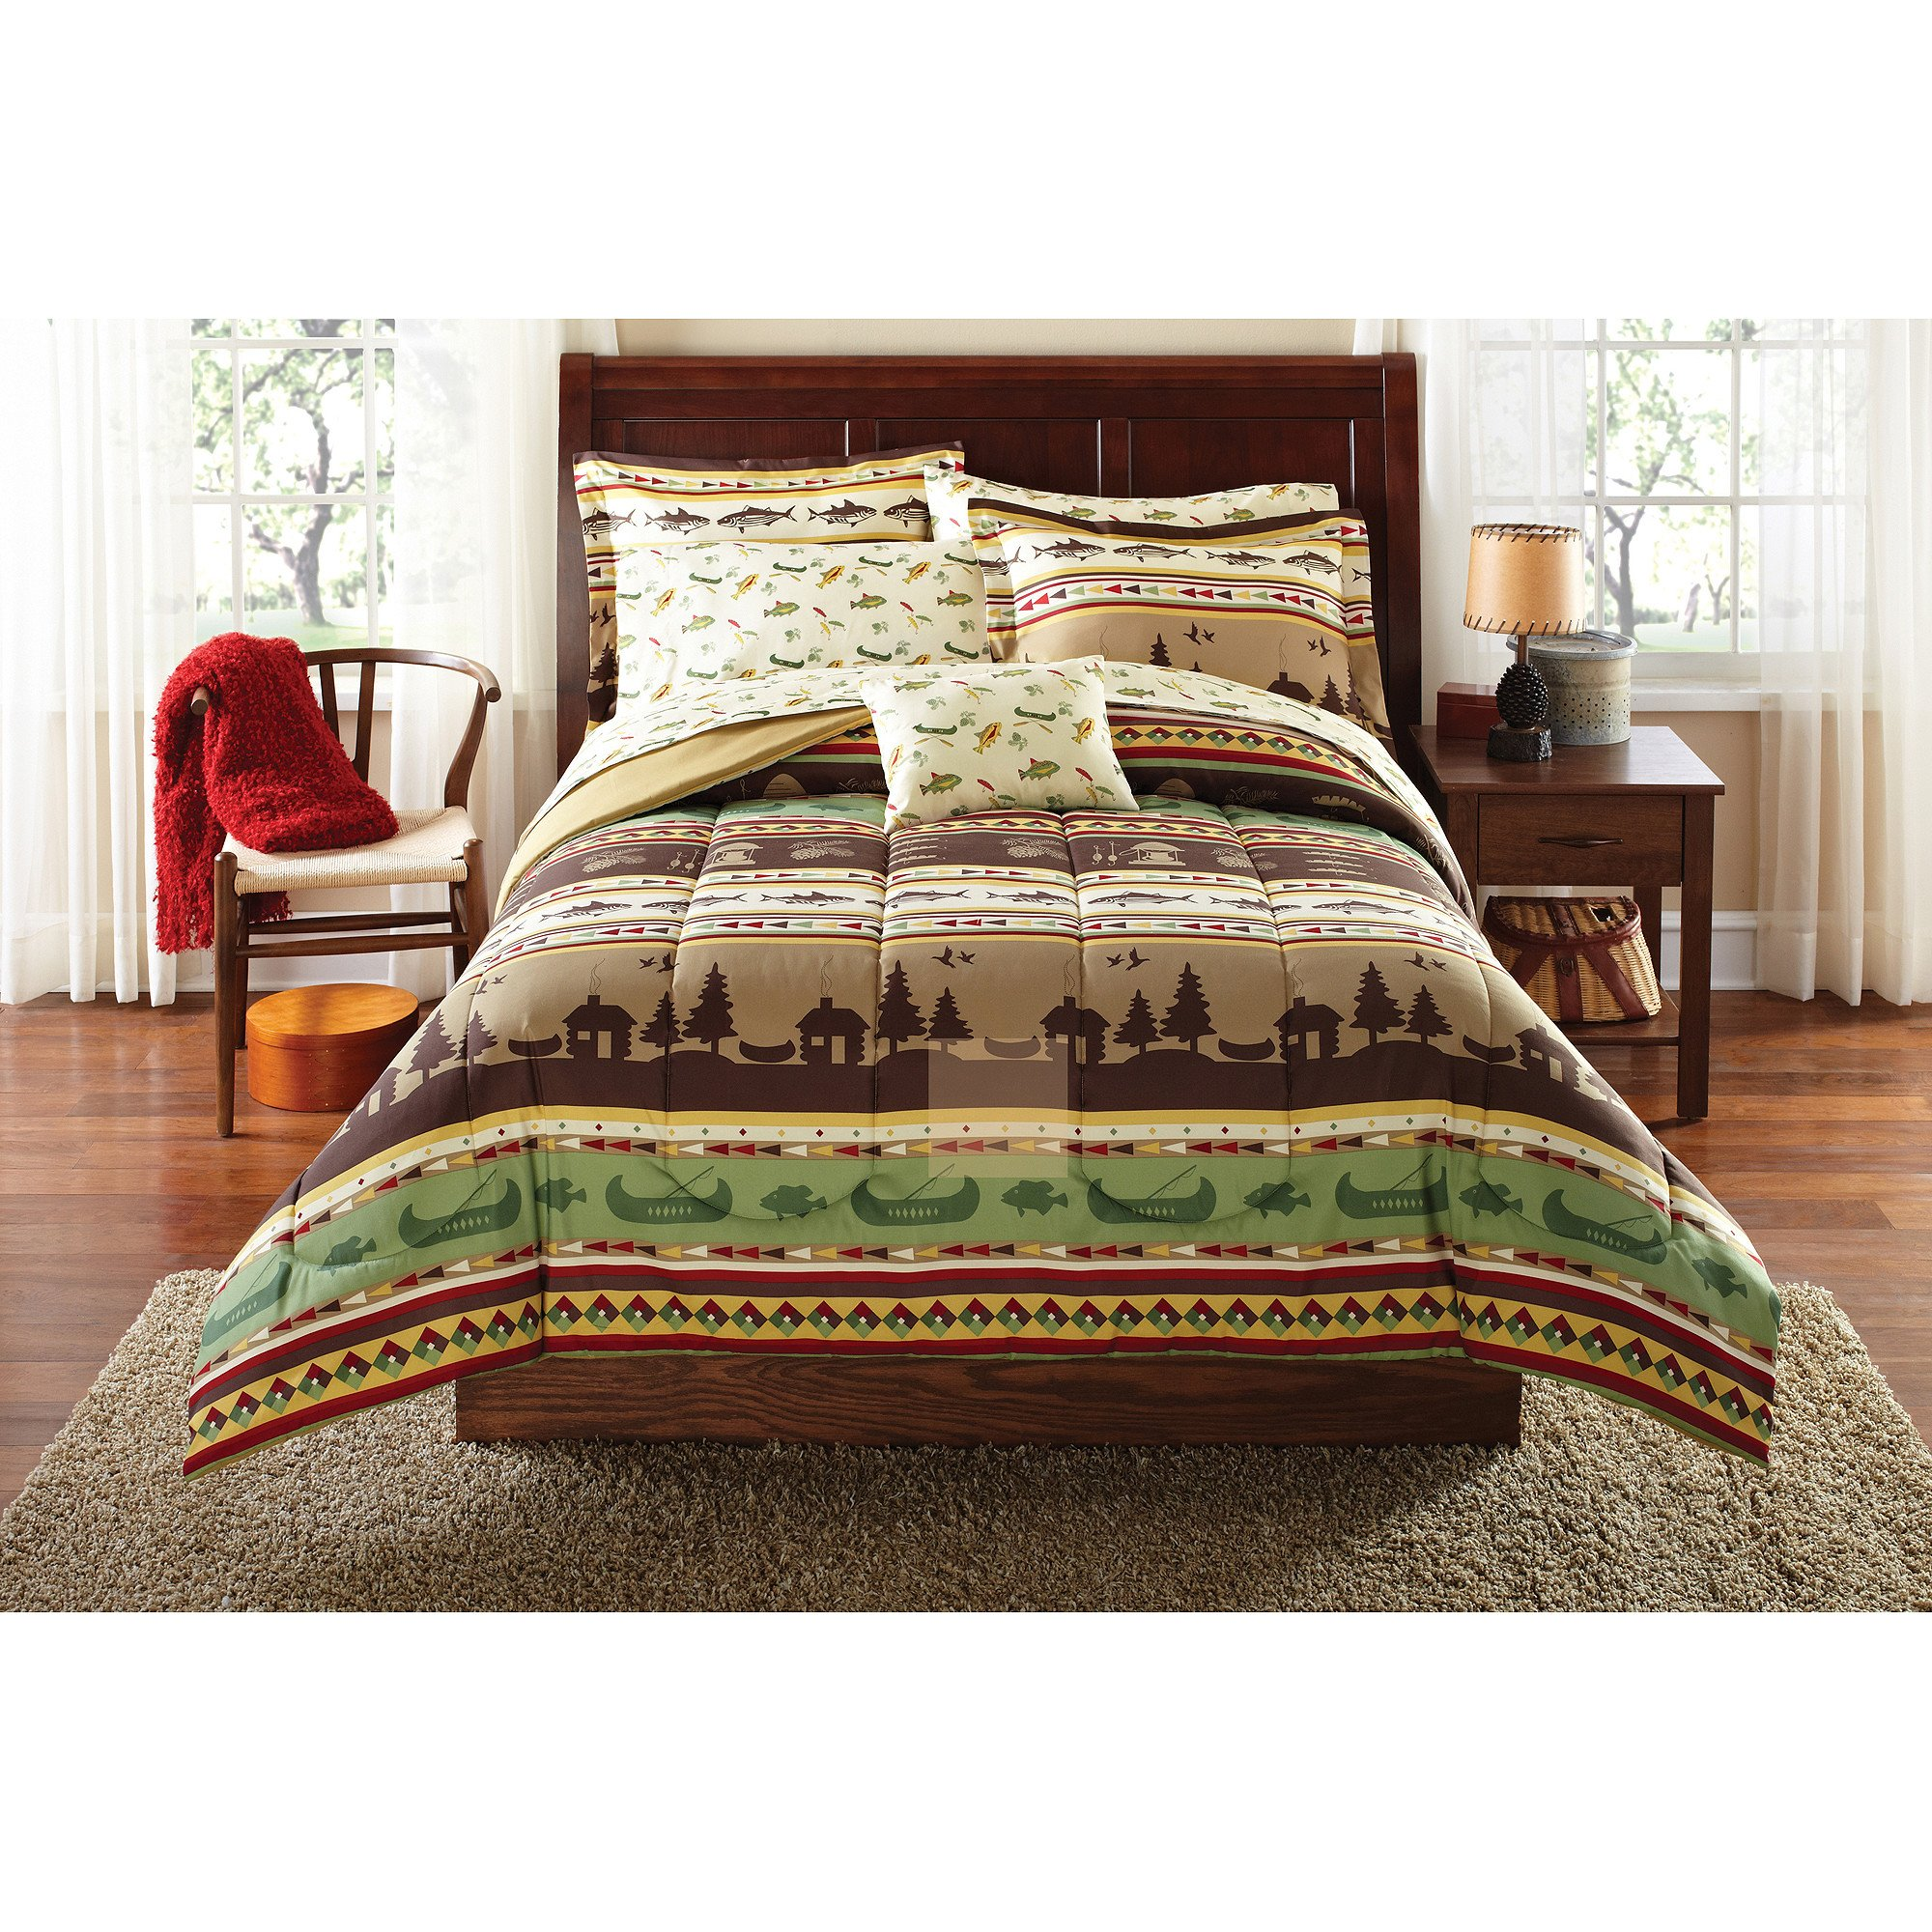 8 Piece Brown Green Fishing Stripes Theme Comforter Queen Set, Featuring Boats, Geometric Patchwork Striped Inspired Print, Cabin Lodge Hunting Pattern, Sea Animals Reversible Bedding, Vibrant Colors